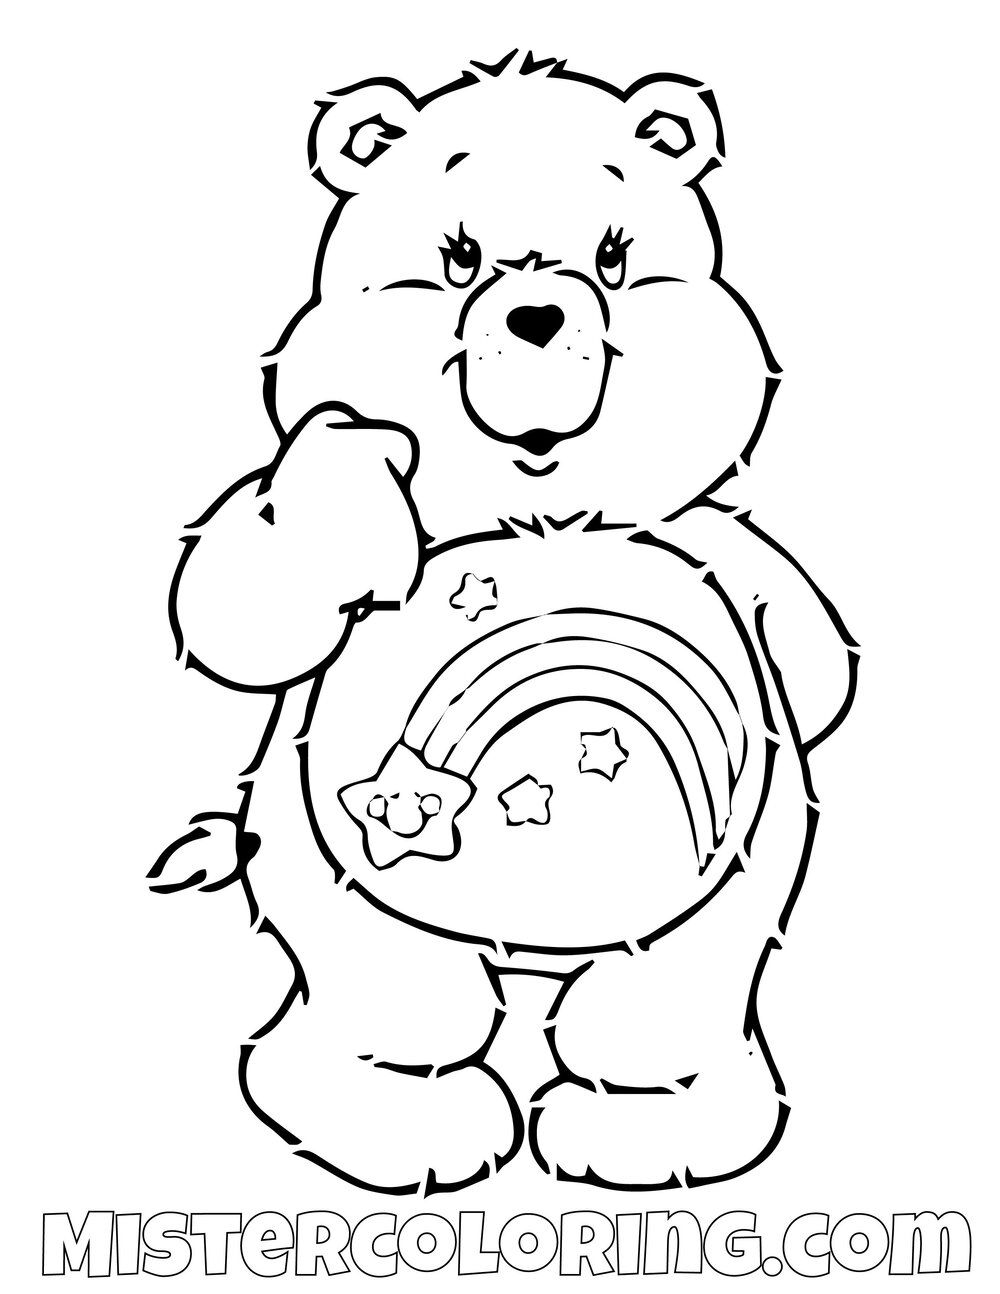 Cheer Bear Coloring Page Bear Coloring Pages Coloring Pages Coloring Pages For Kids